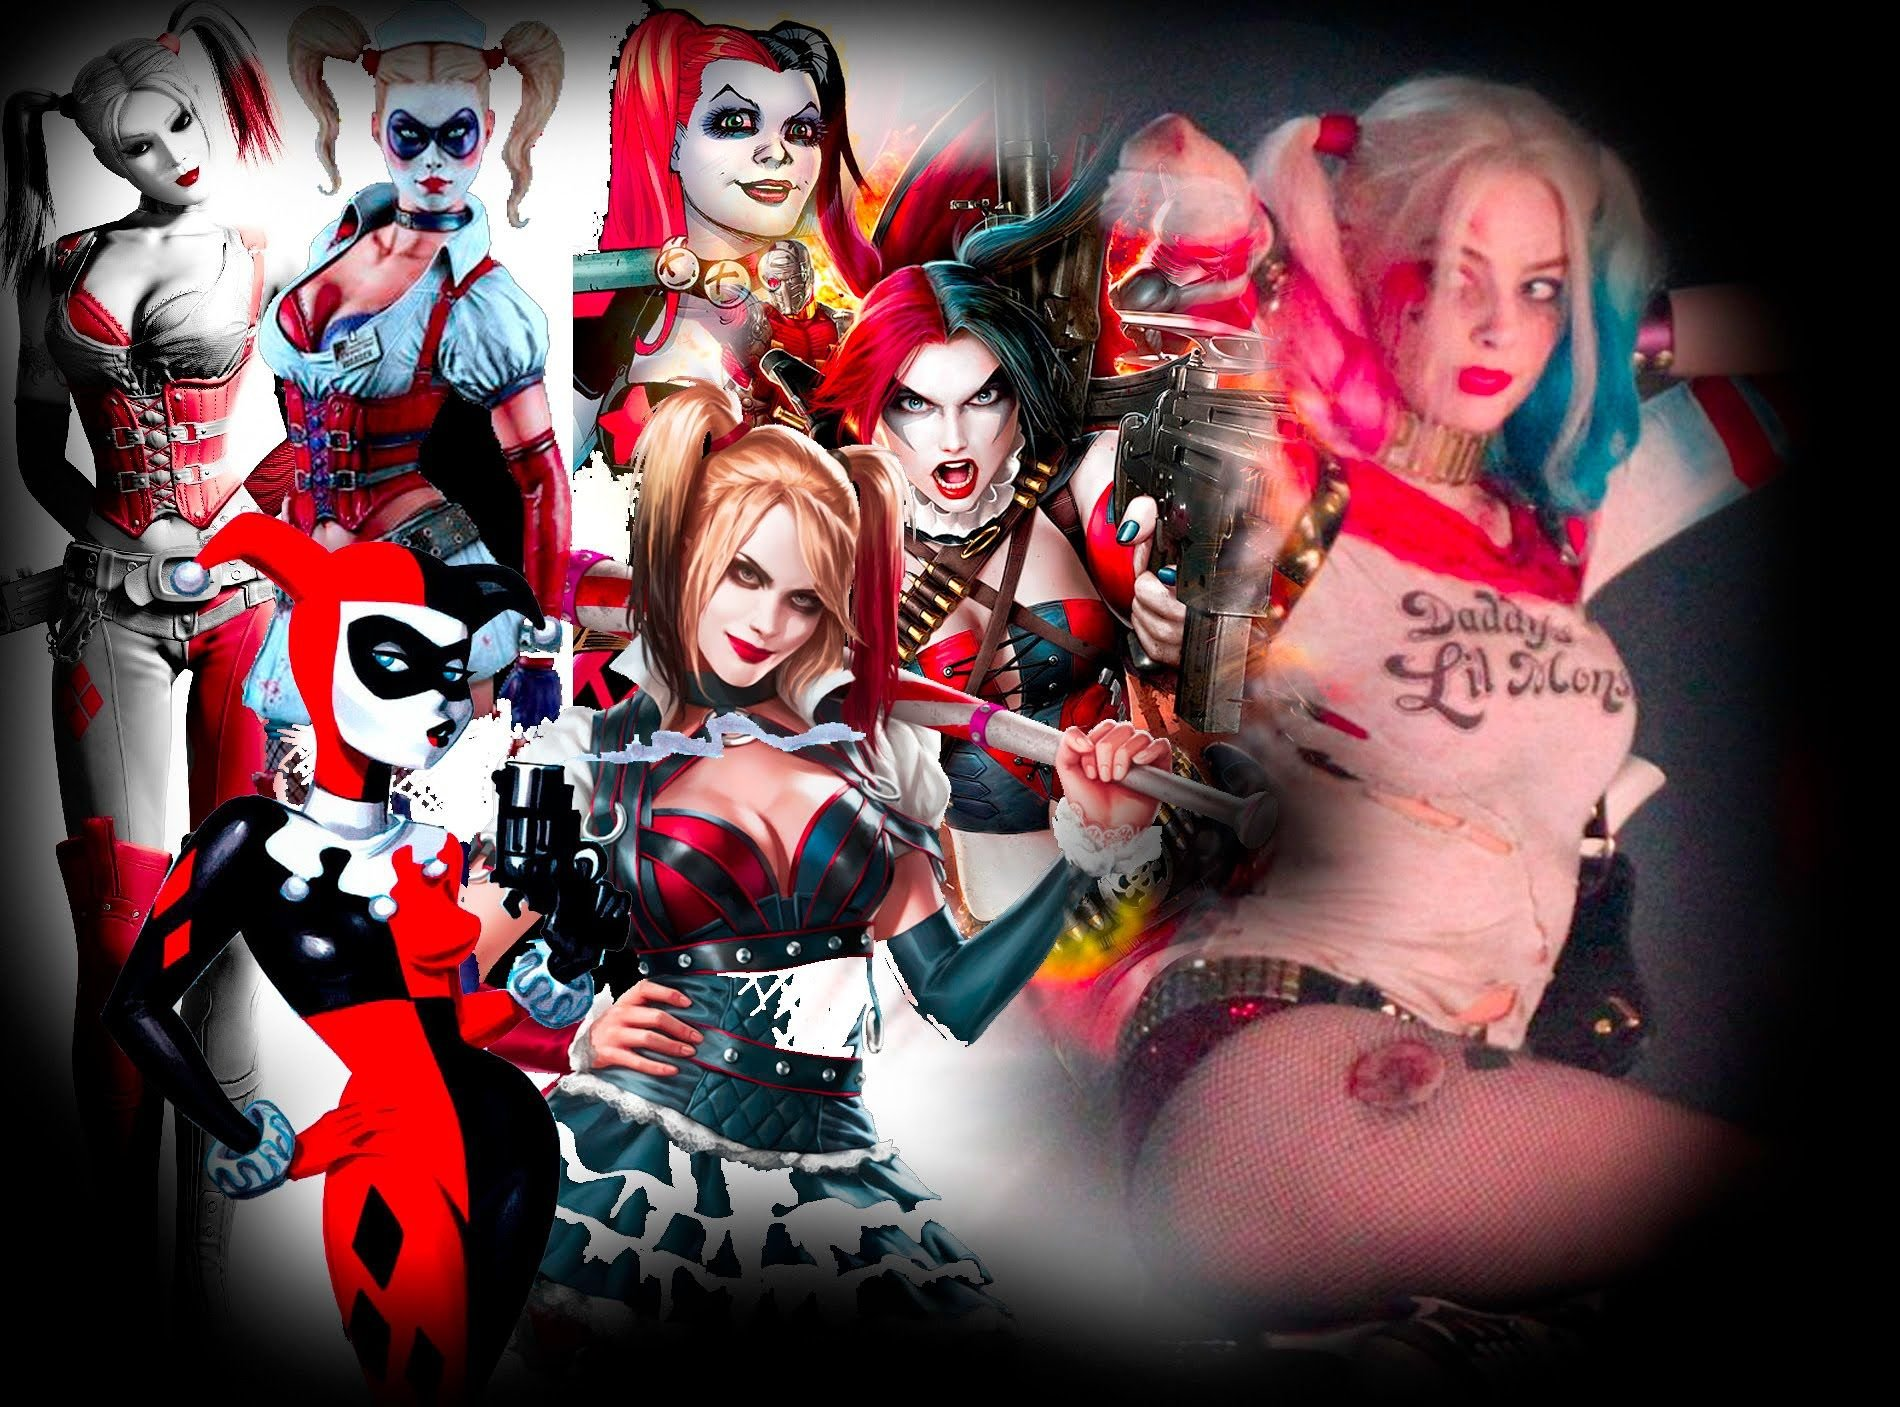 SUICIDE SQUAD action superhero dc  ics d C action fighting mystery  ics harley quinn moreover Movie Captain America 3A Civil War Wallpapers in addition The Grand Tour additionally 6523414901 furthermore 208193. on captain america 3